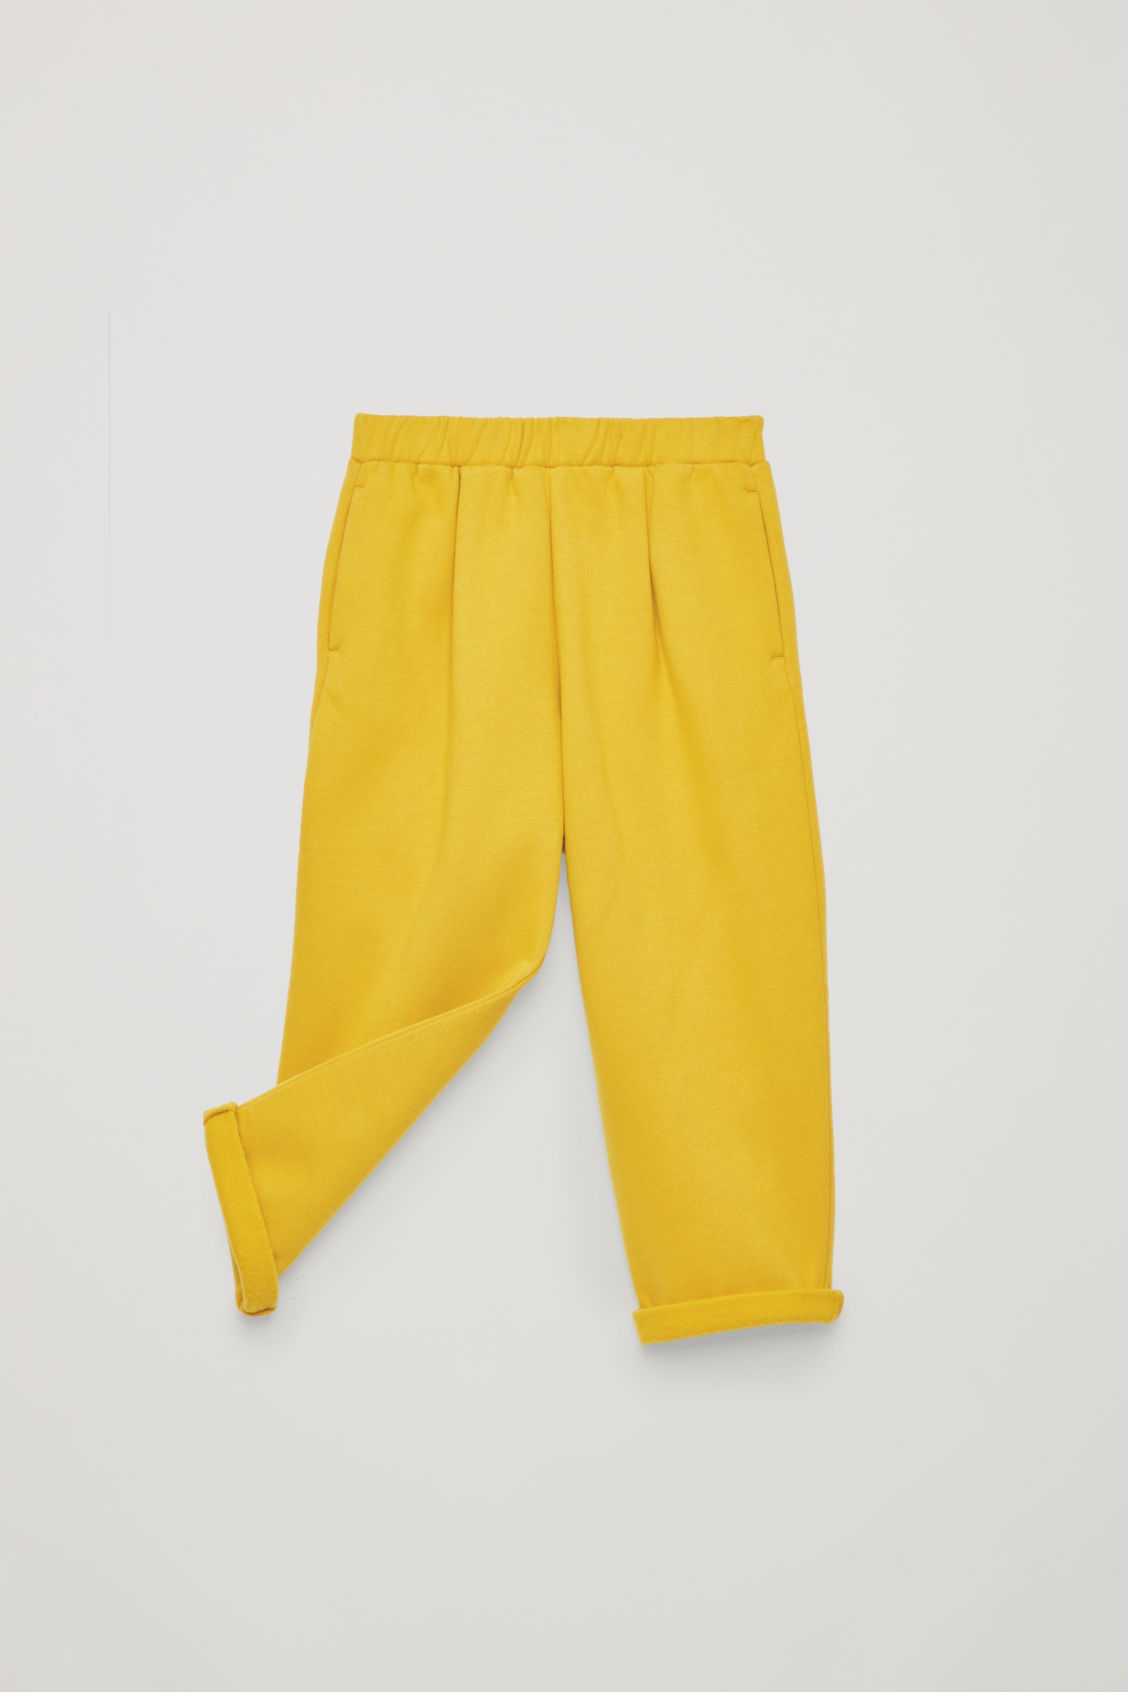 Detailed image of Cos relaxed jersey trousers in yellow